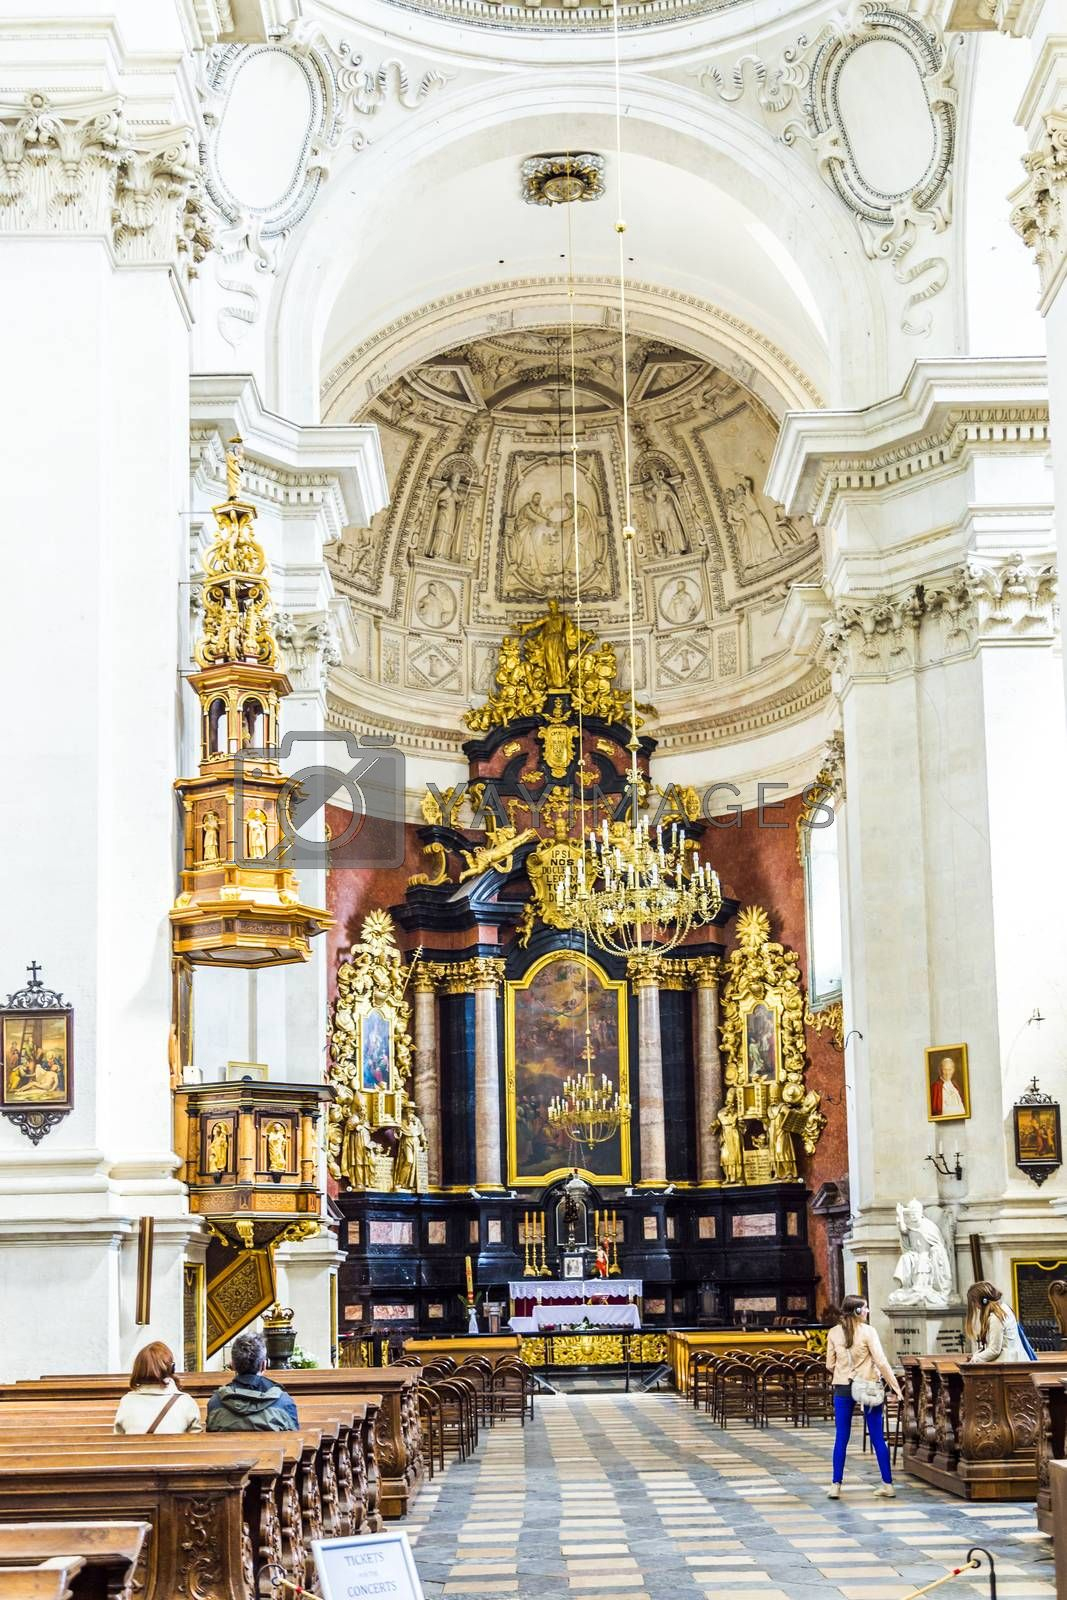 KRAKOW, POLAND - MAY 4, 2014: people visit Church of Saints Peter and Paul in Old Town district. It is biggest of historic Churches of Krakow in terms of seating capacity, was built between 1597-1619.